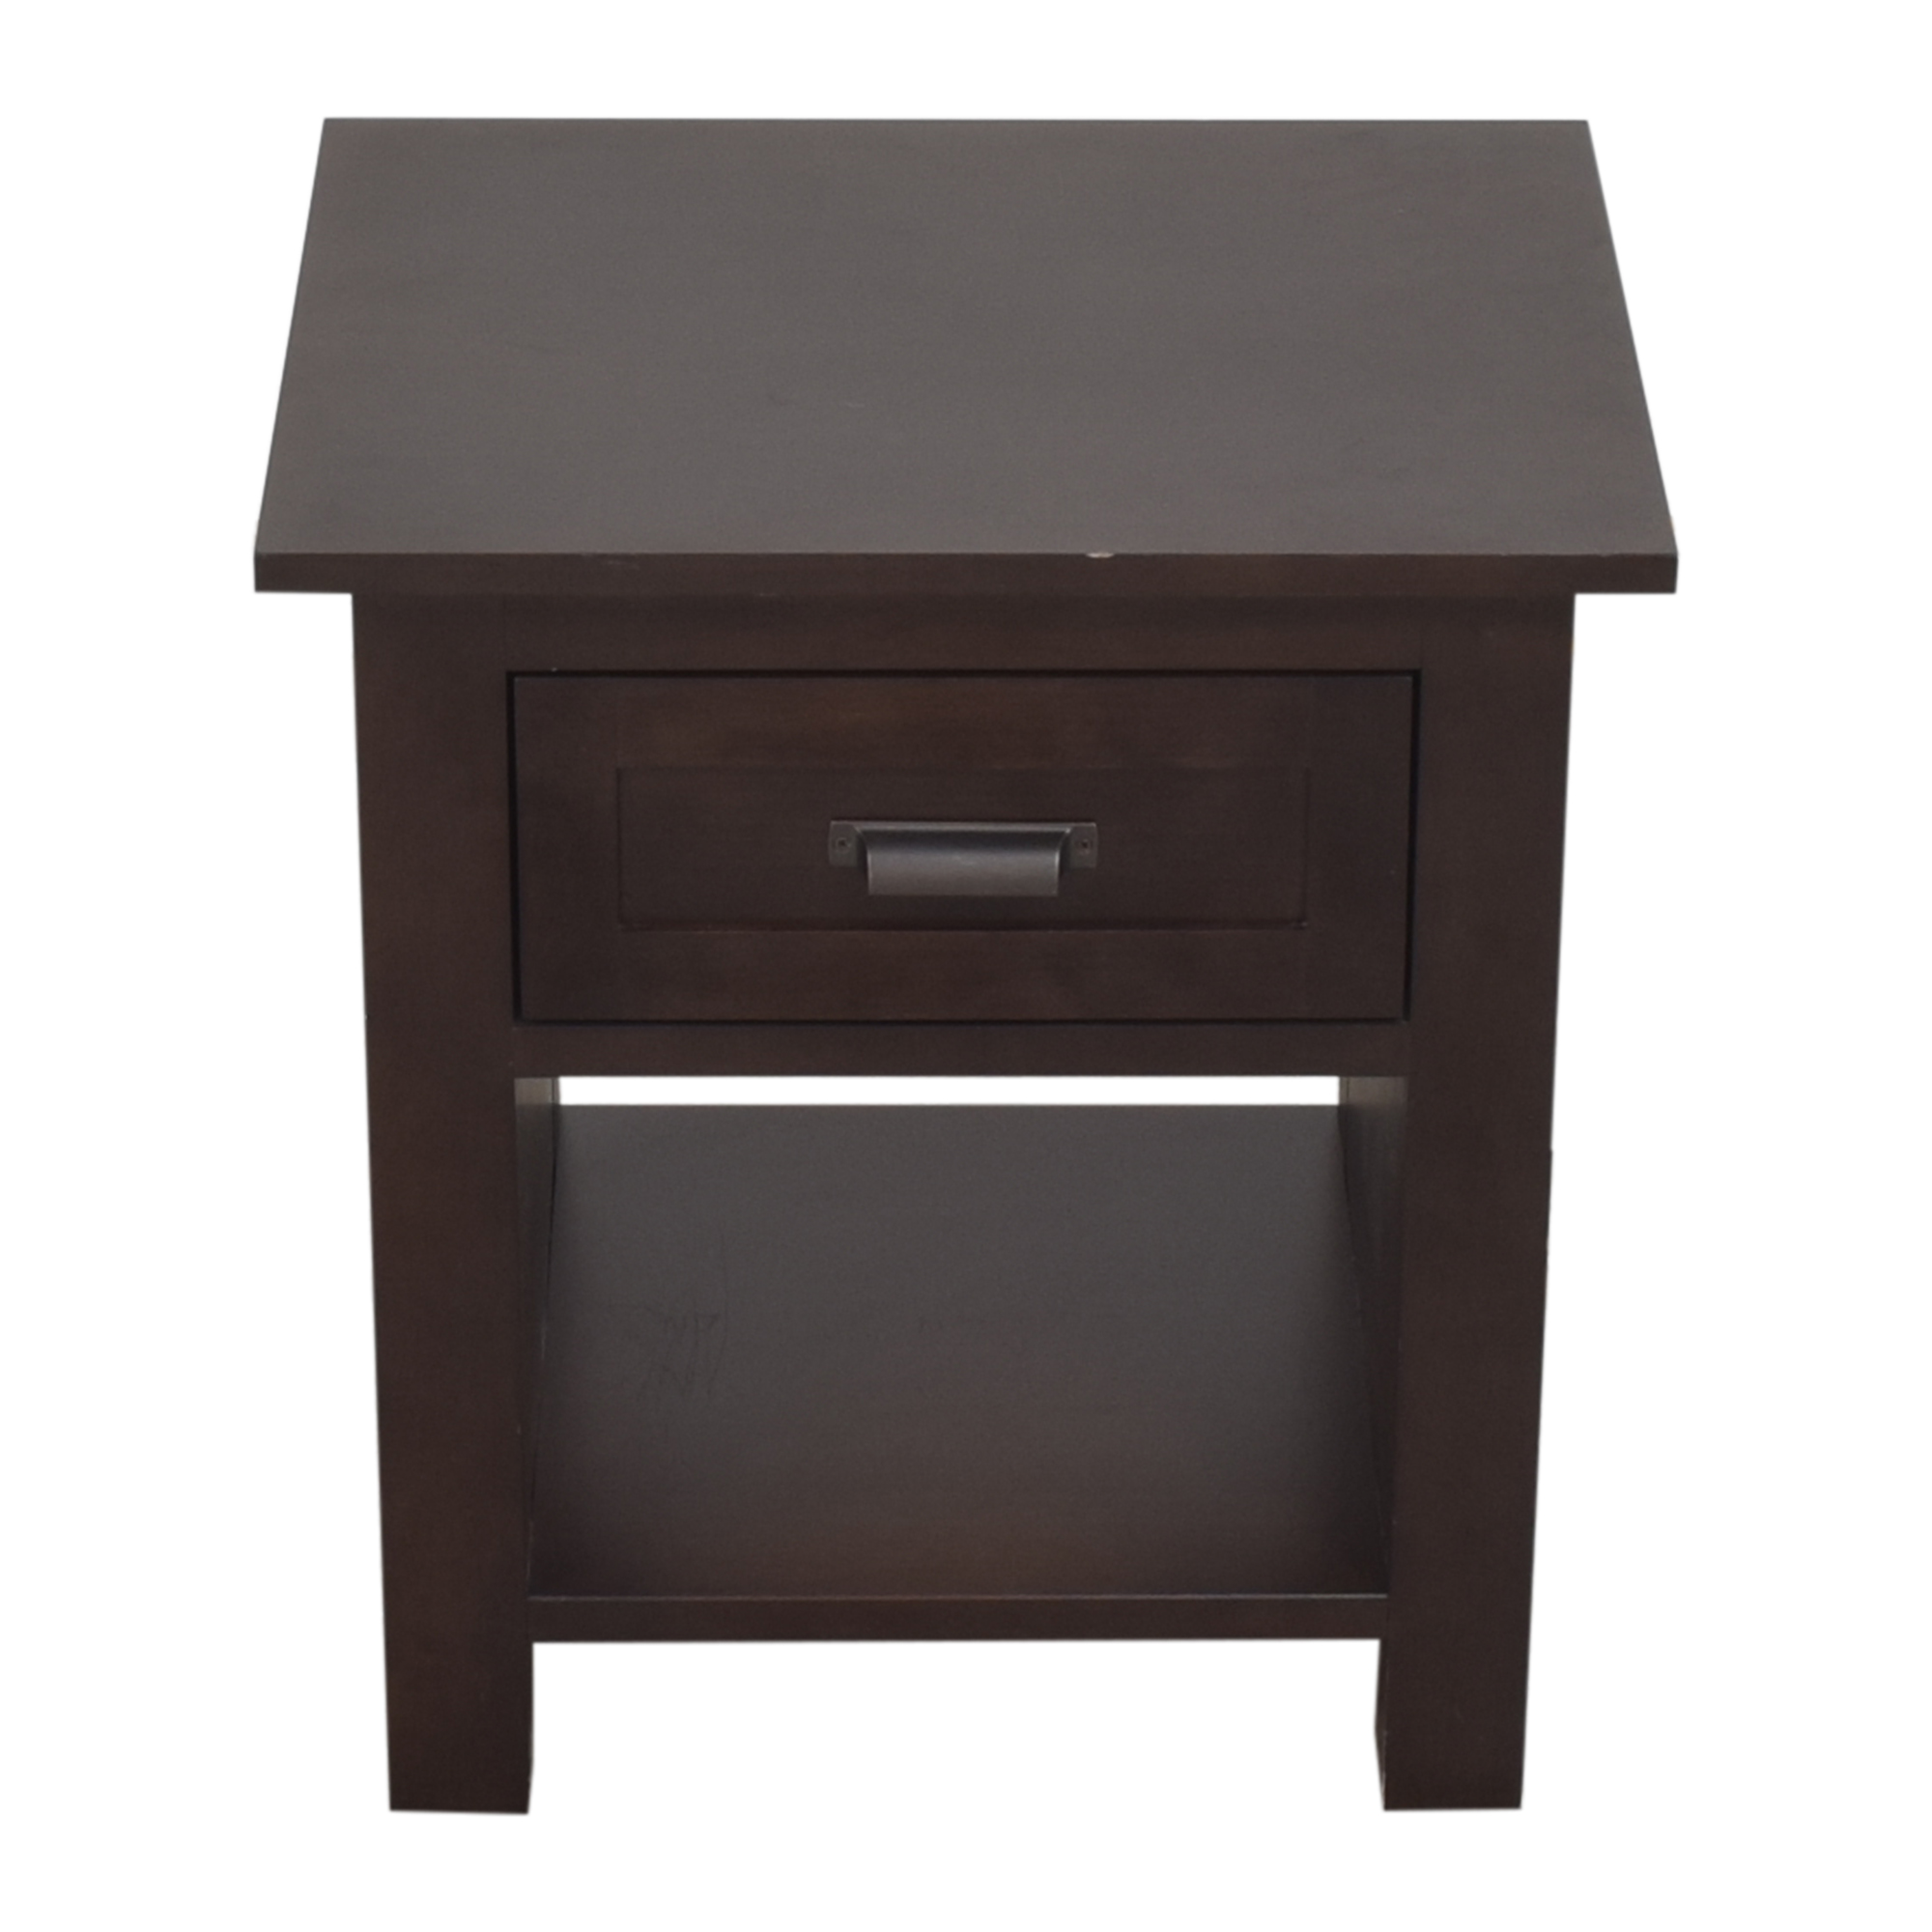 Room & Board Room & Board Bennett One Drawer Nightstand used